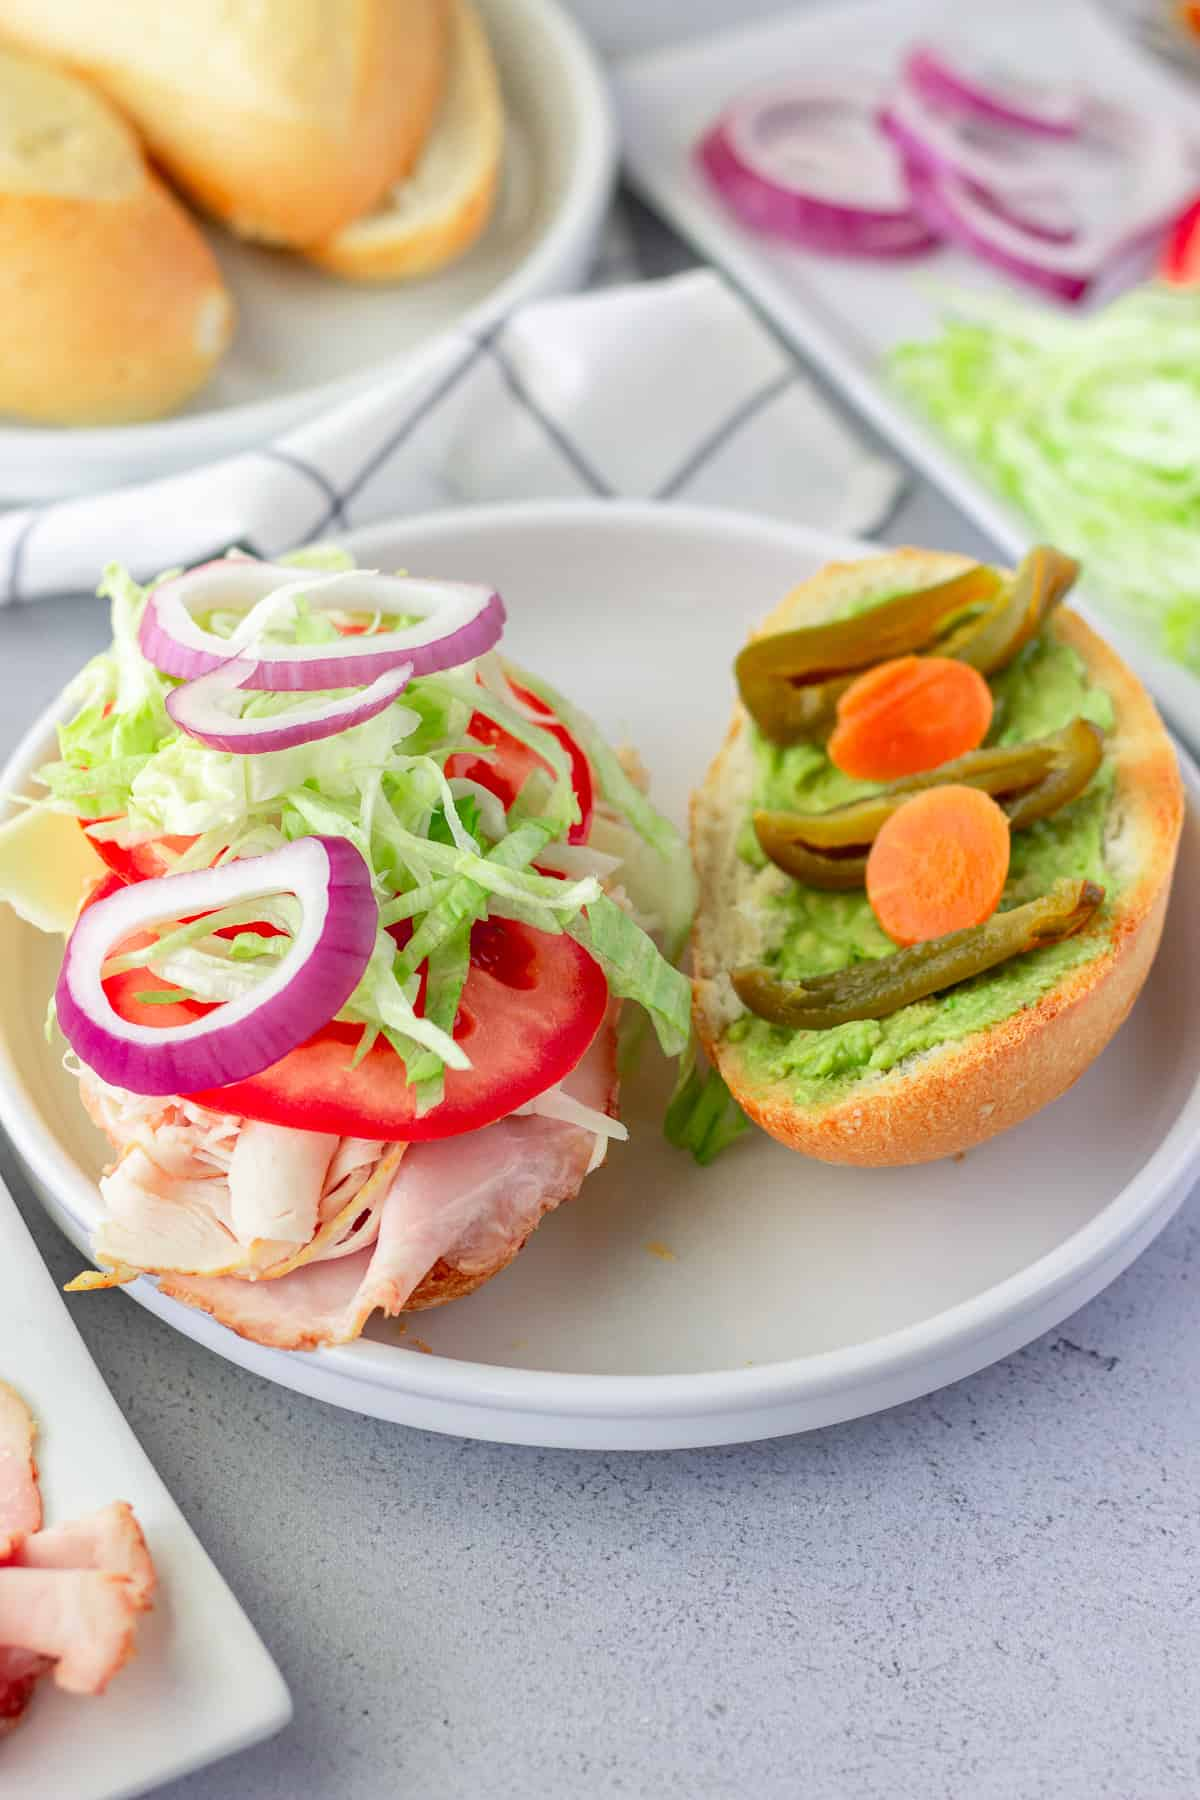 Open faced lonche to show ingredients inside the sandwich.